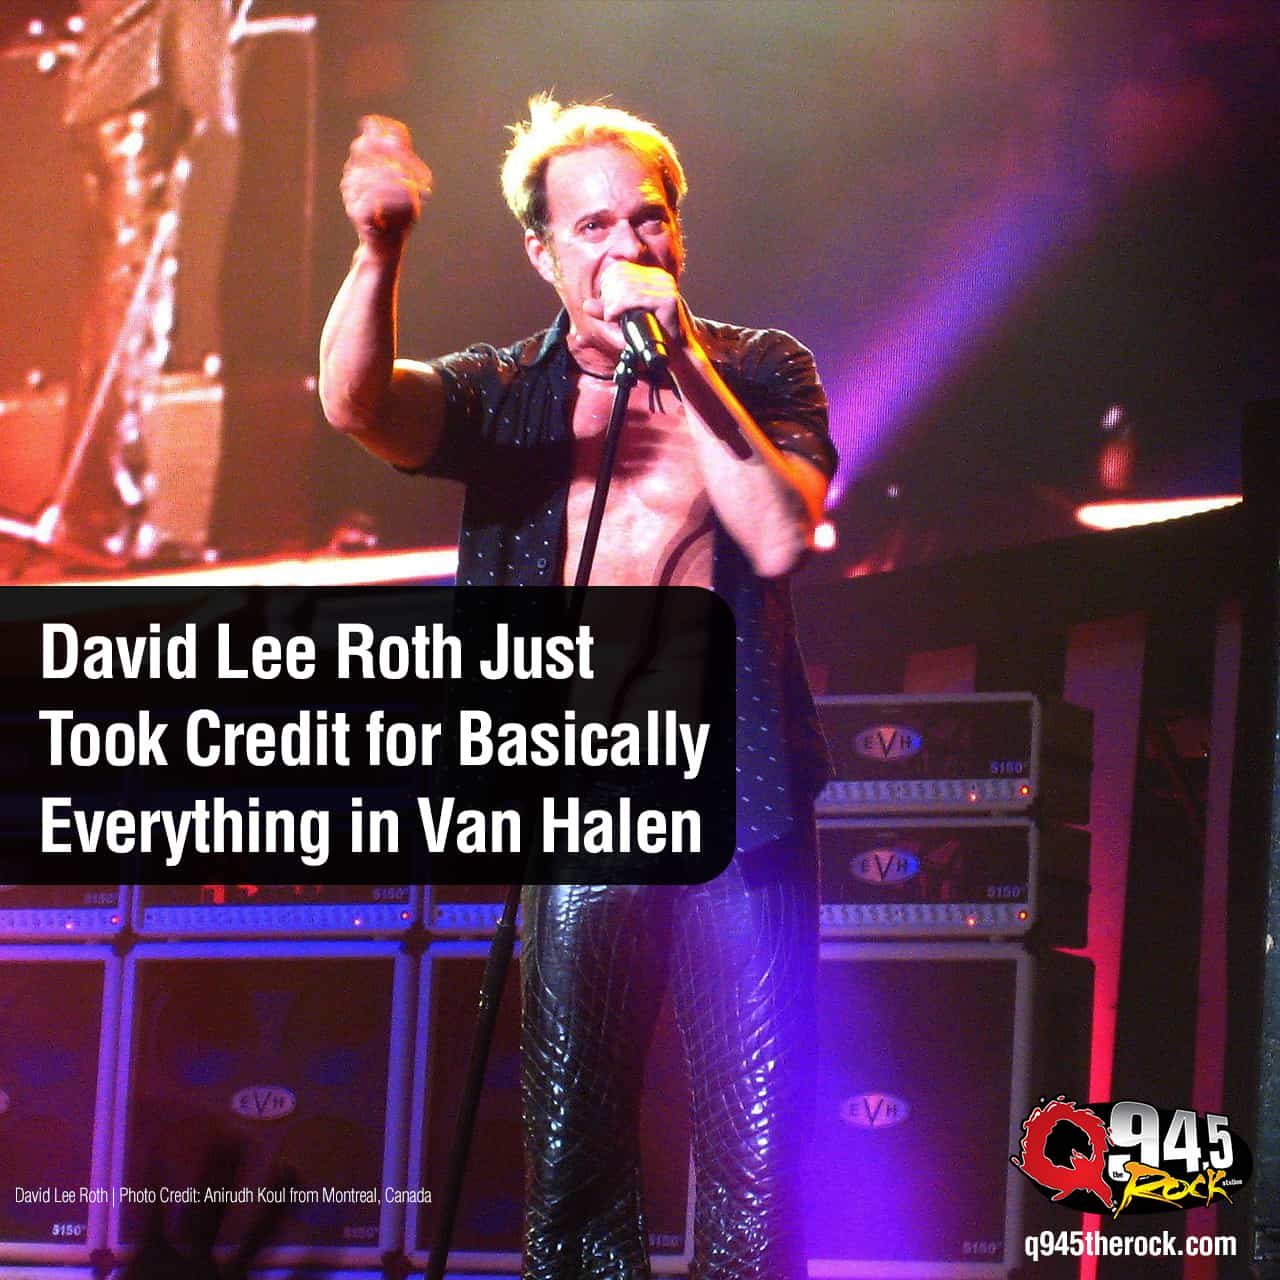 DAVID LEE ROTH has never been shy about his importance to VAN HALEN.  But in a new interview, he pretty much took credit for EVERYTHING.  And that's almost not an exaggeration.